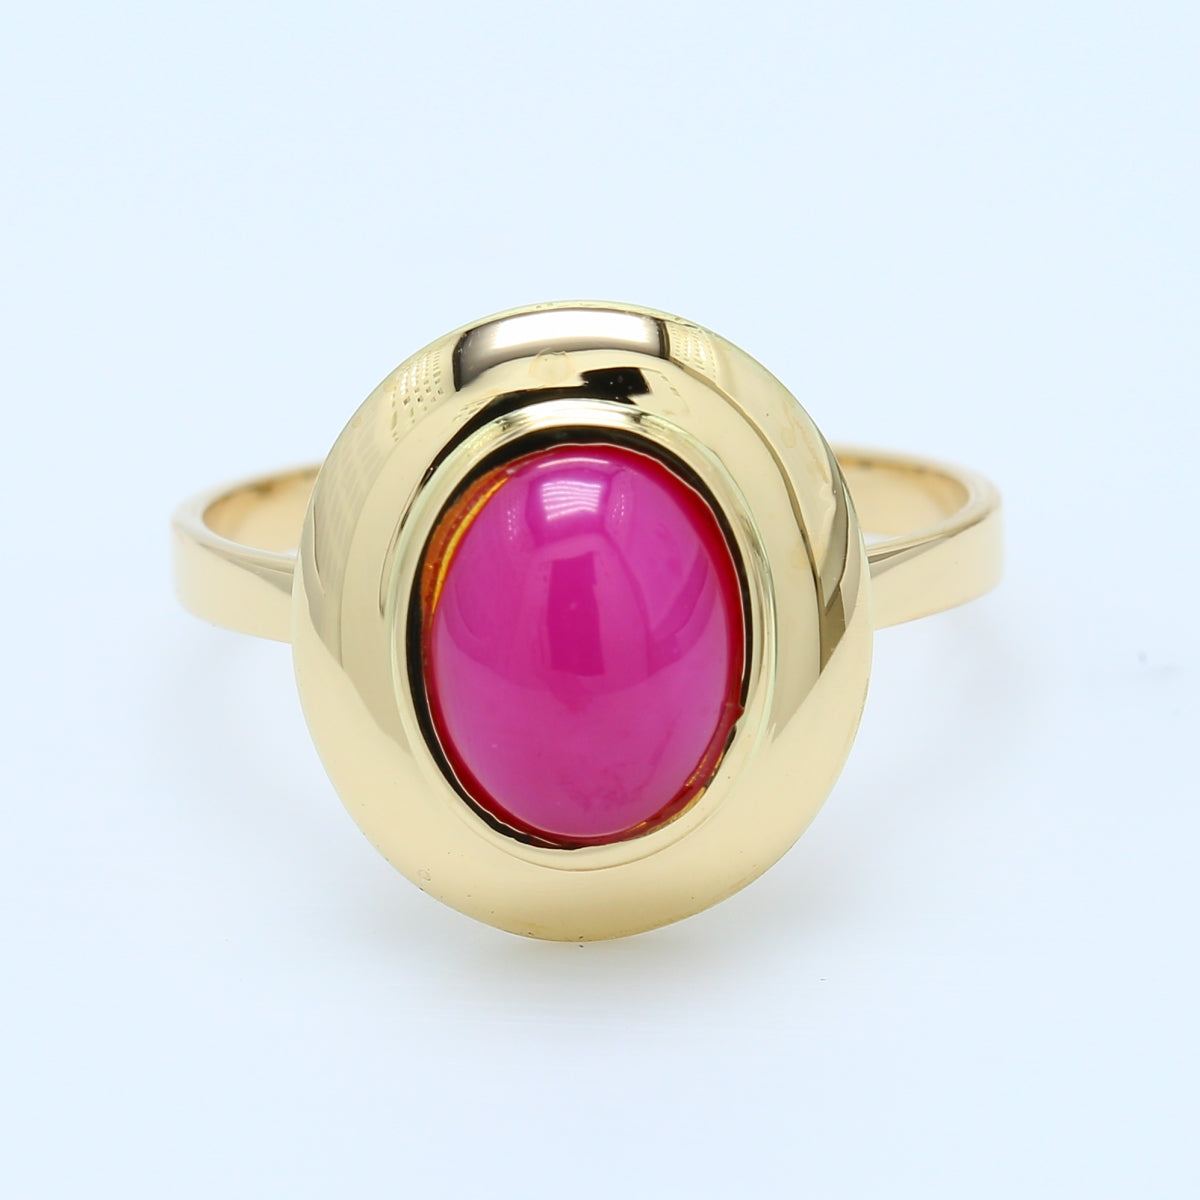 Oval Star Ruby Ring Bezel Set in 14k Yellow Gold Ring